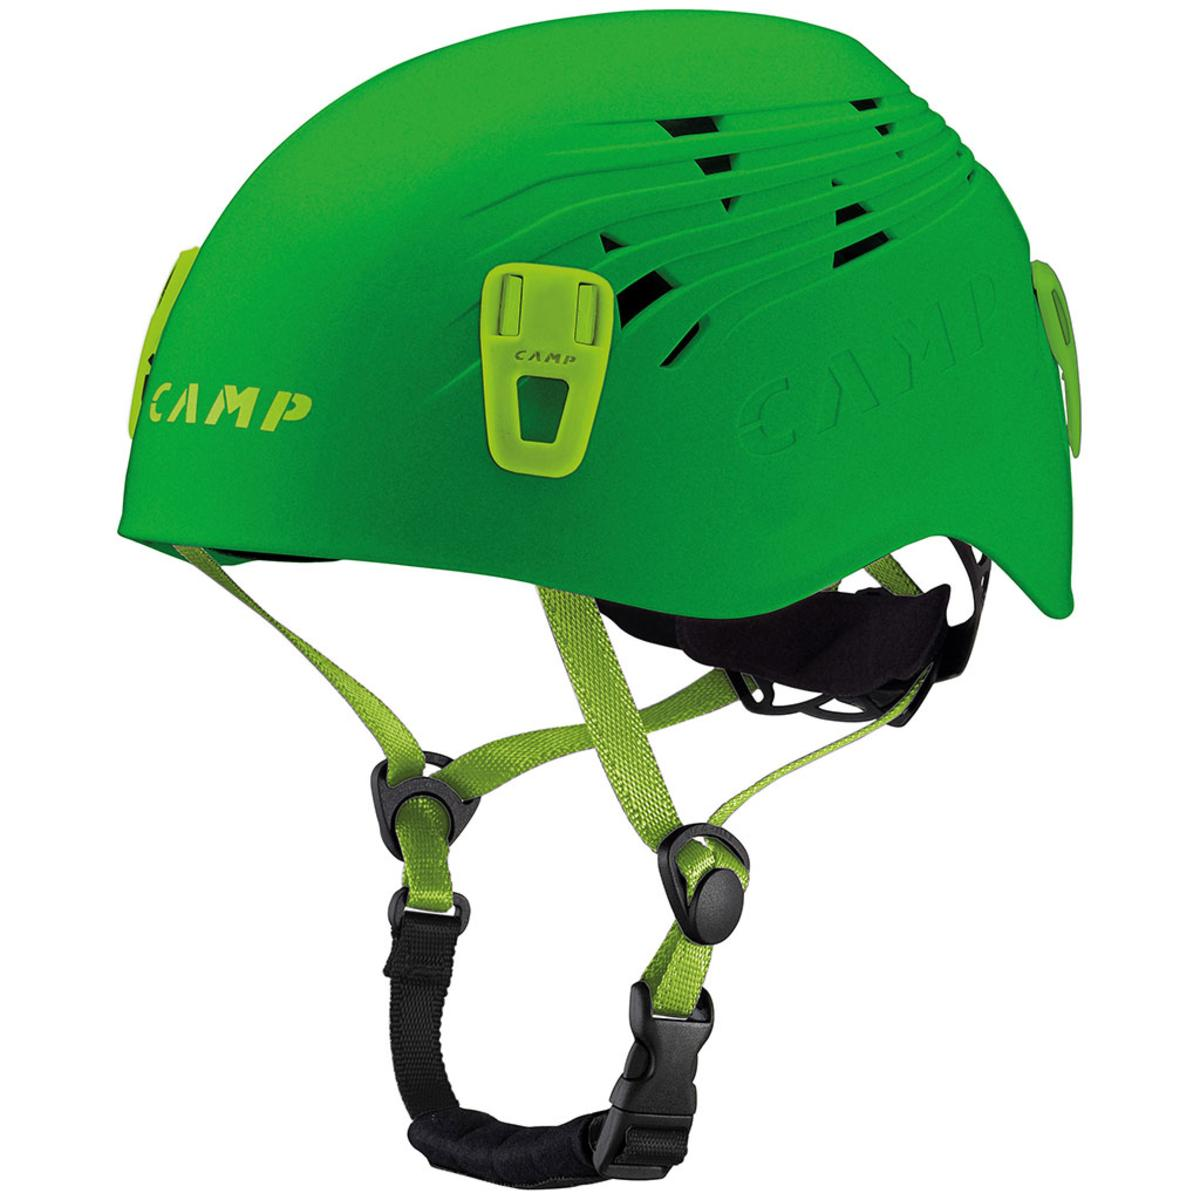 Camp USA Titan Helmet